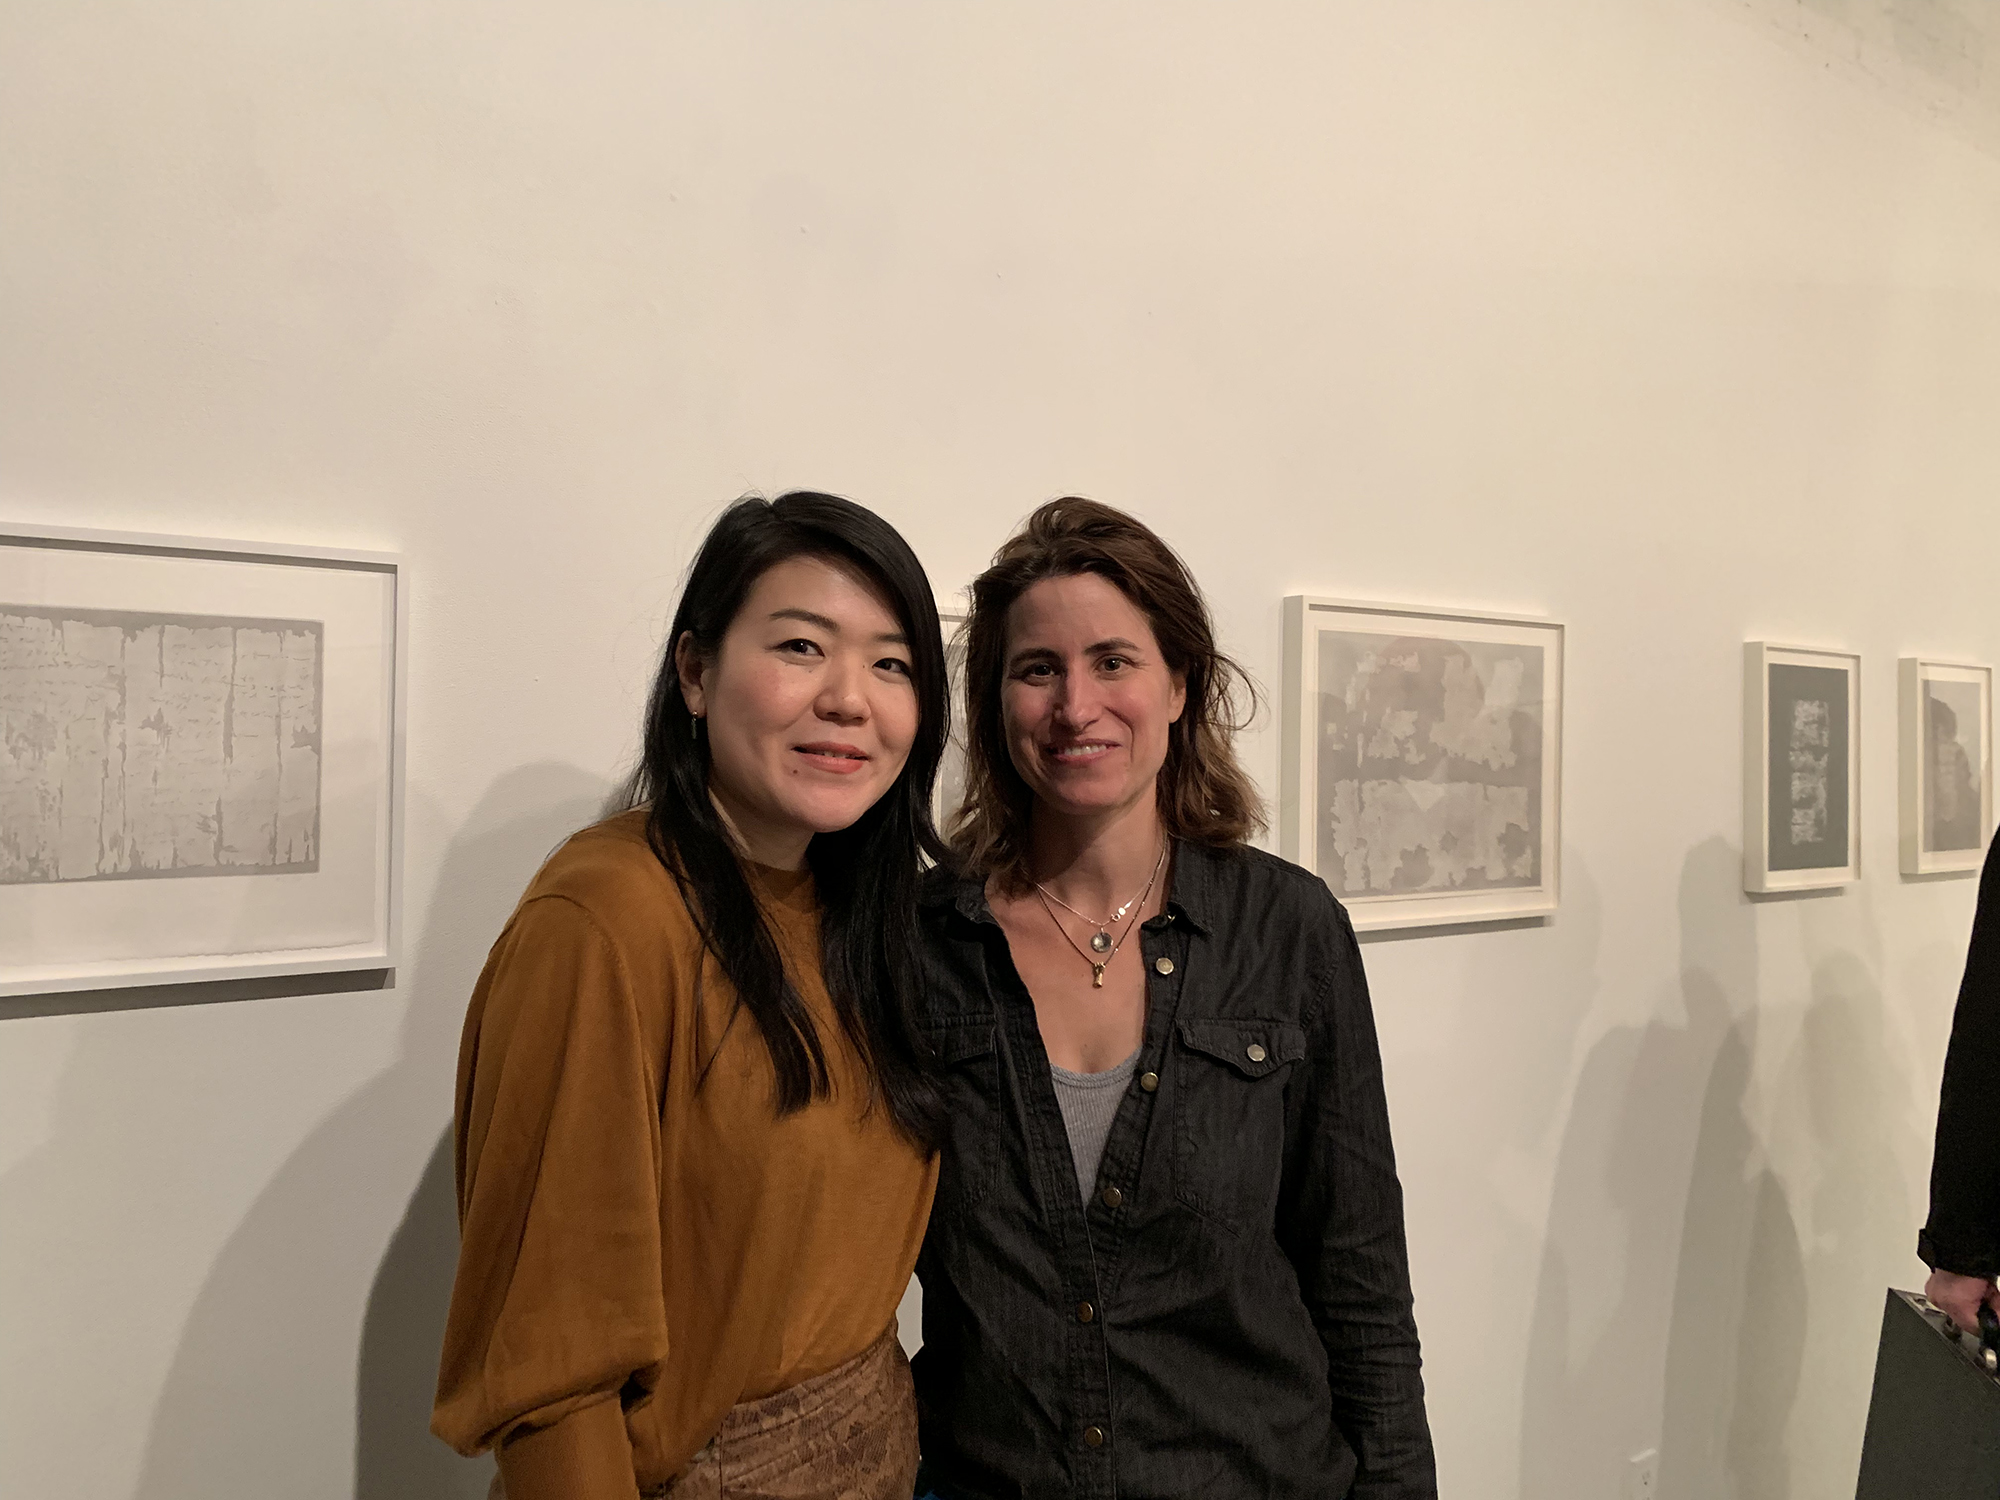 Naho Taruishi and Katie Michel, Founder of Planthouse, at the opening reception of  Papyrus.